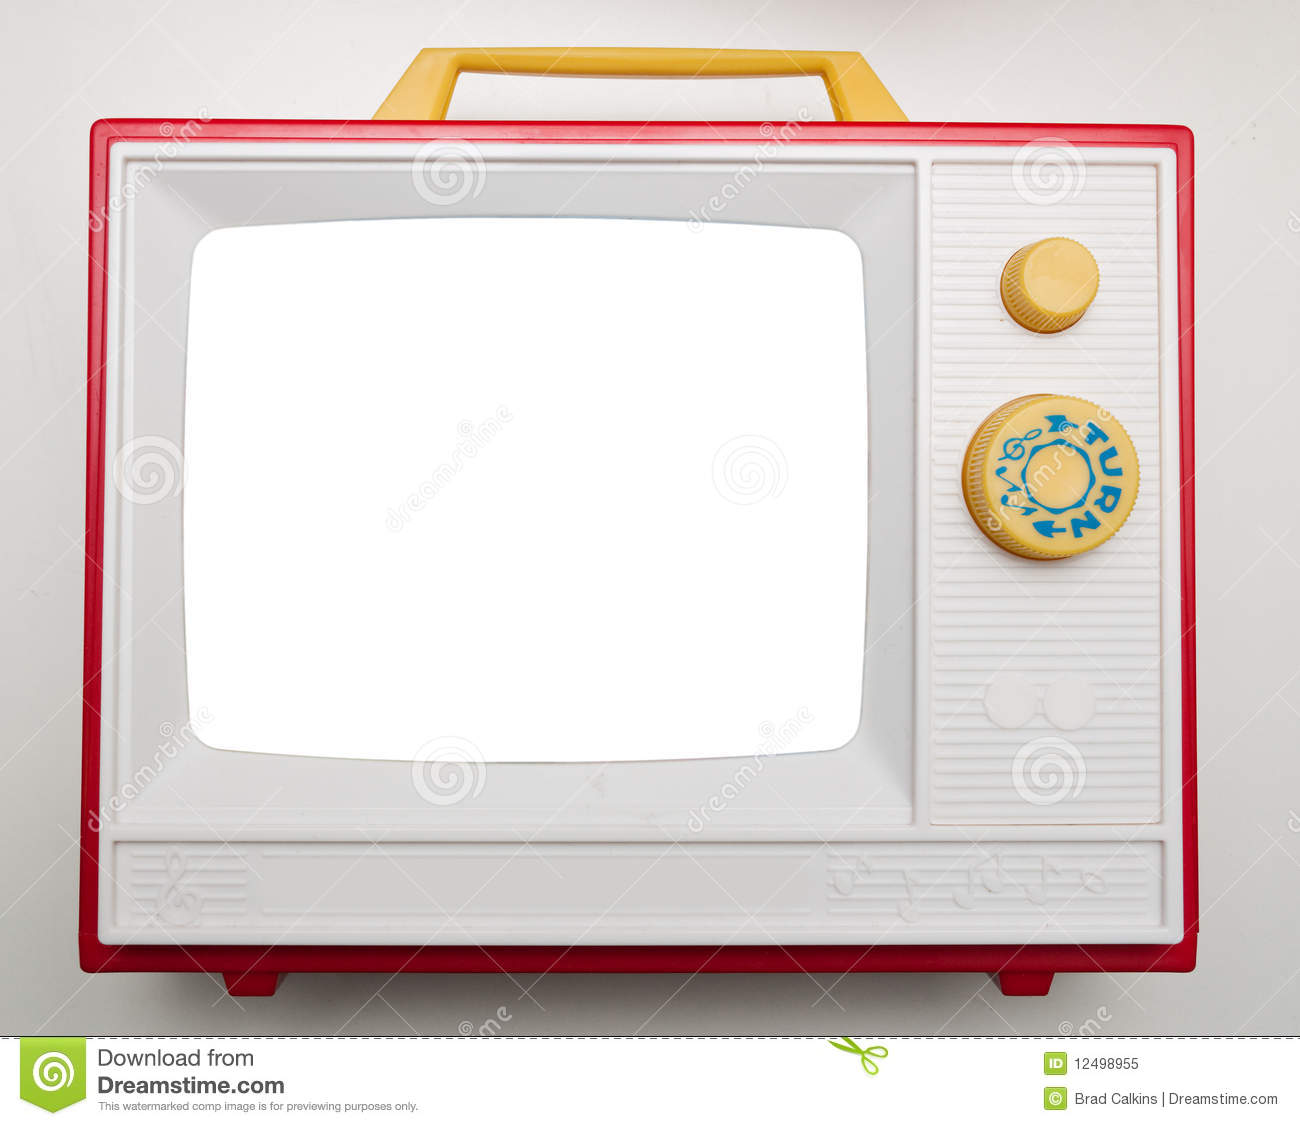 Toy TV Royalty Free Stock Photo - Image: 12498955